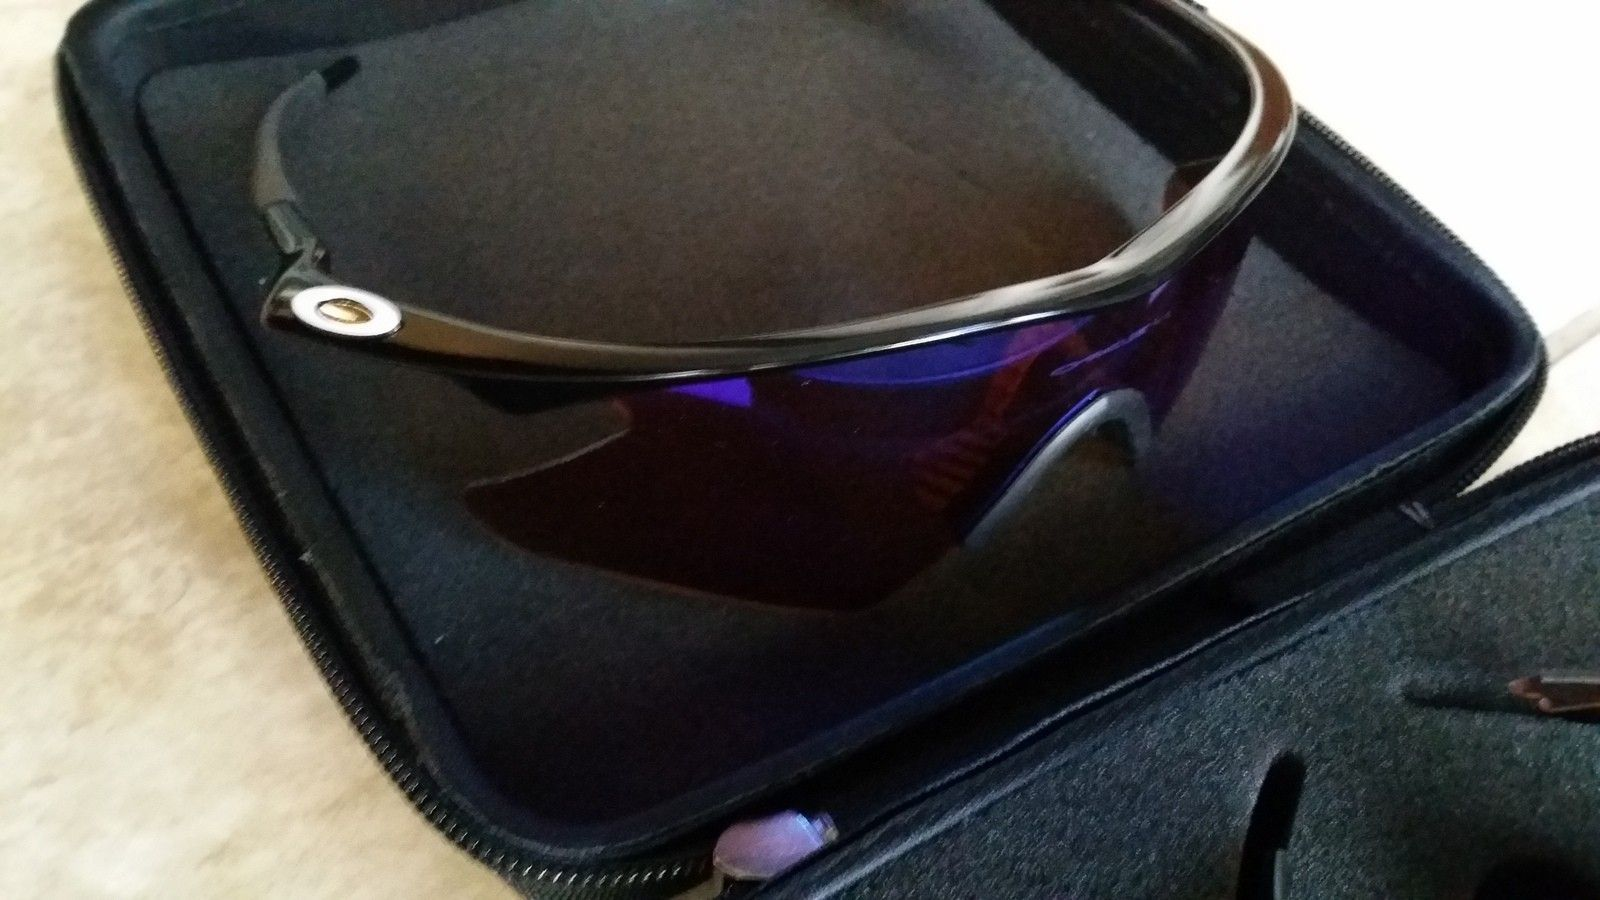 Price drop! Pro M Frame with 2 extra lenses - 20150905_081019.jpg